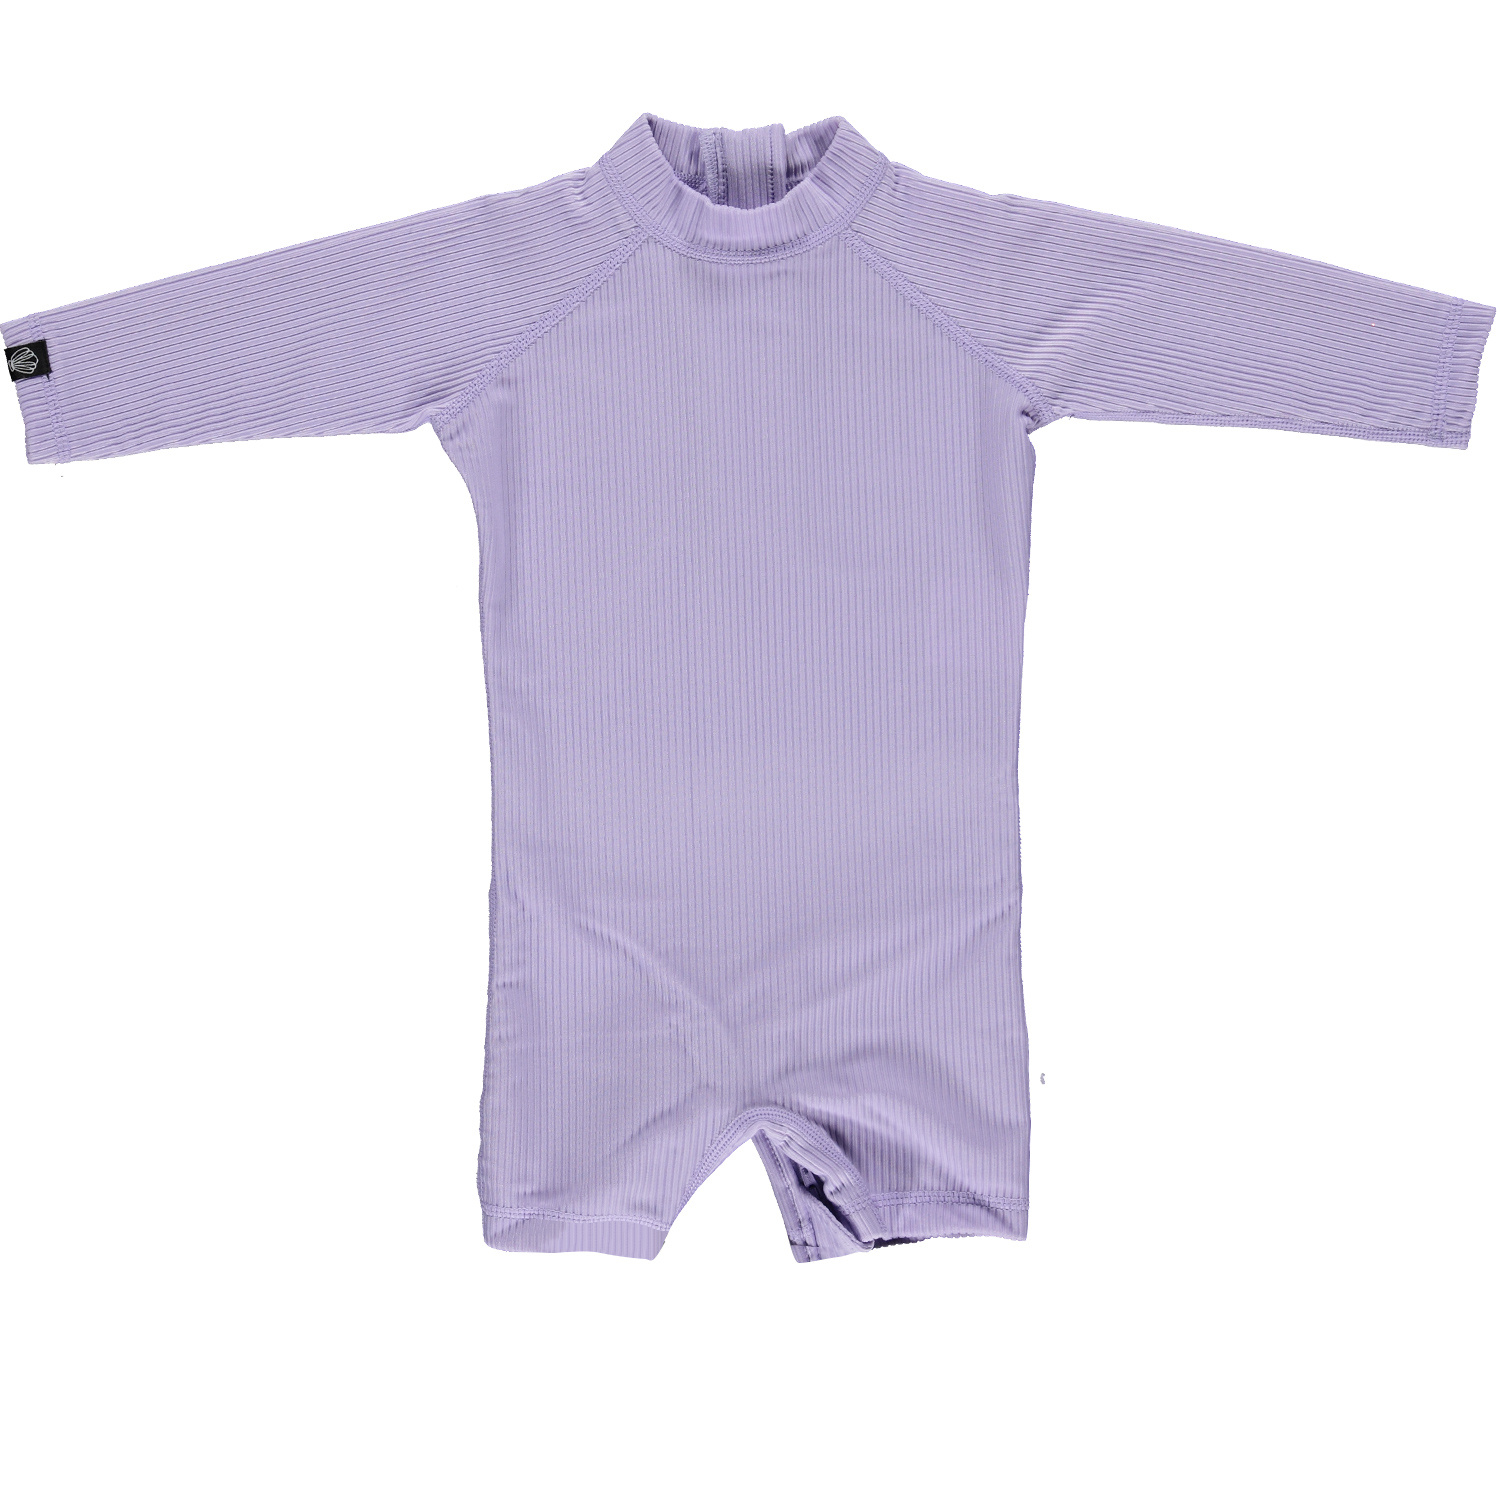 Lavender Ribbed Baby-1